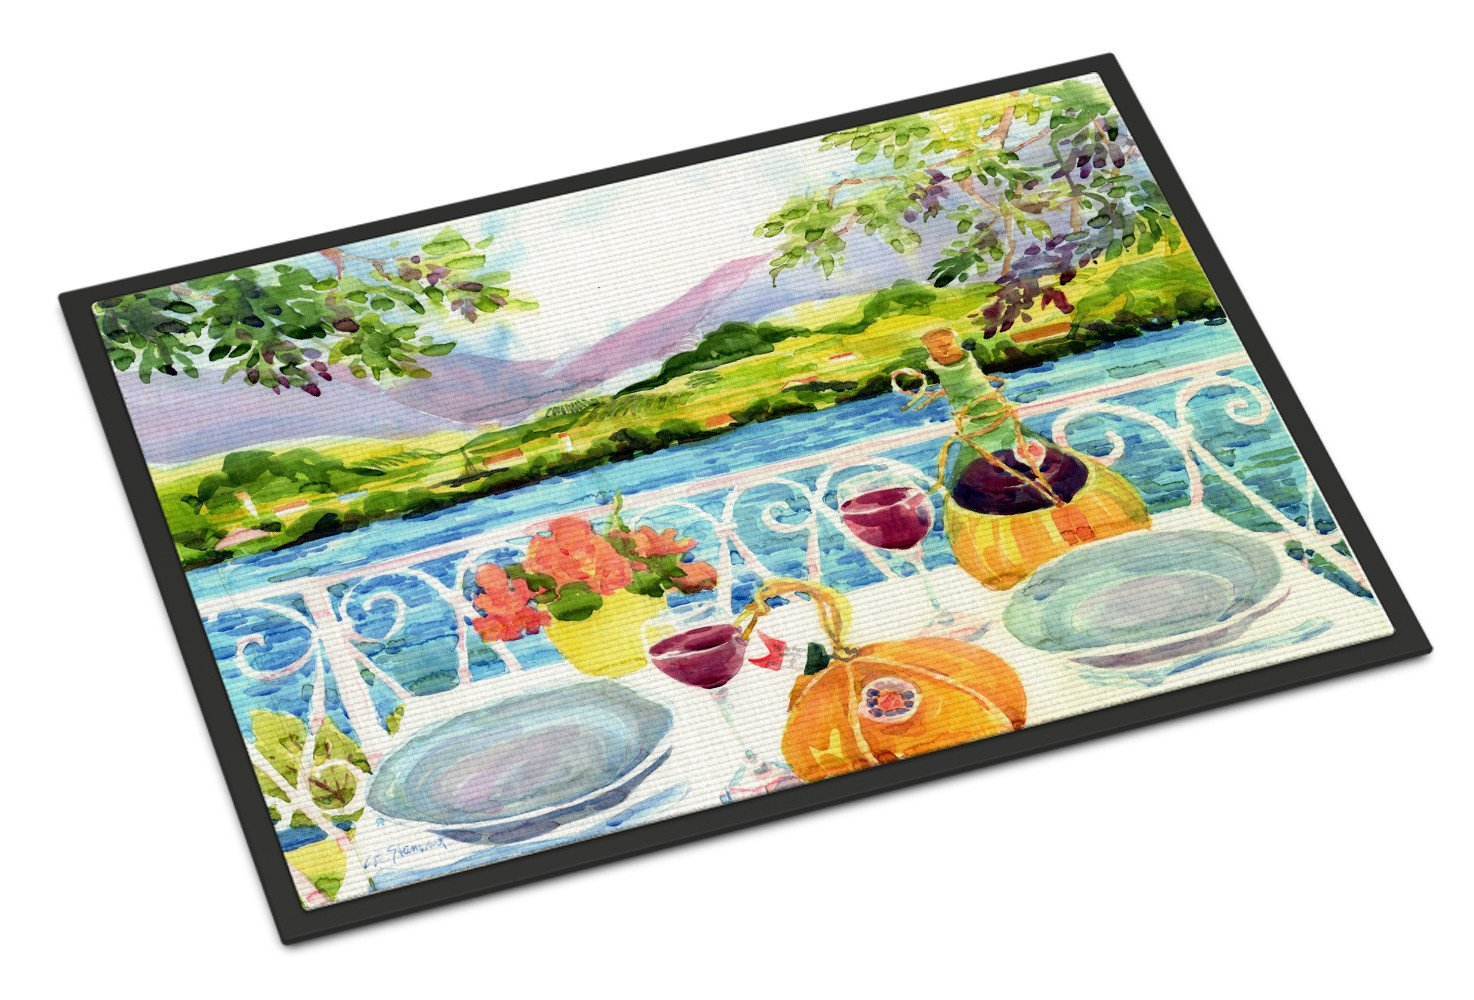 Carolines Treasures Afternoon of Grape Delights Wine Fabric Standard Pillowcase 6139PILLOWCASE Multicolor